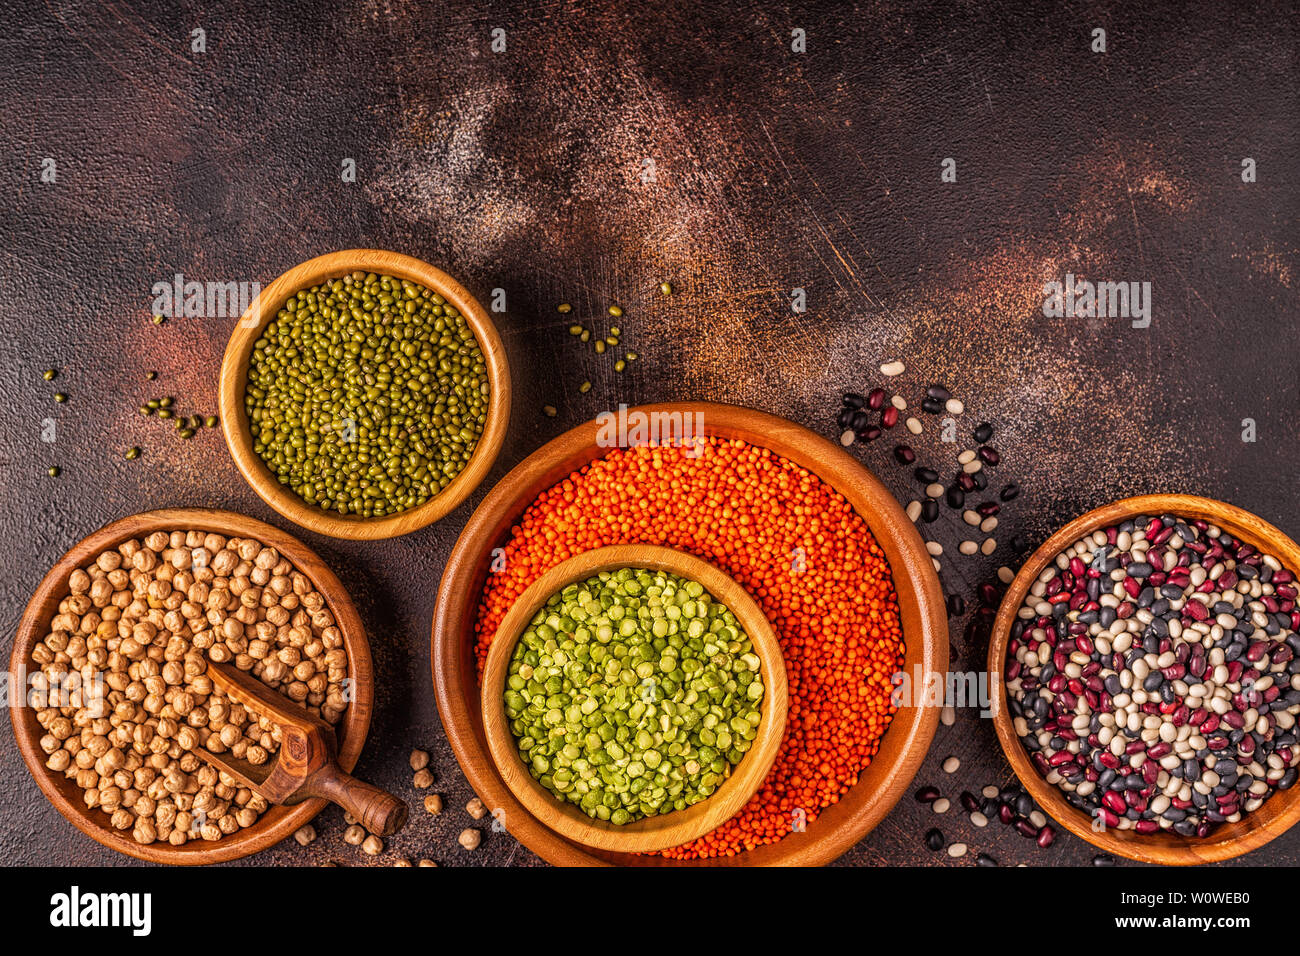 Assortment  of Legumes - lentils, peas, mung, chickpeas and different beans. Top view. - Stock Image